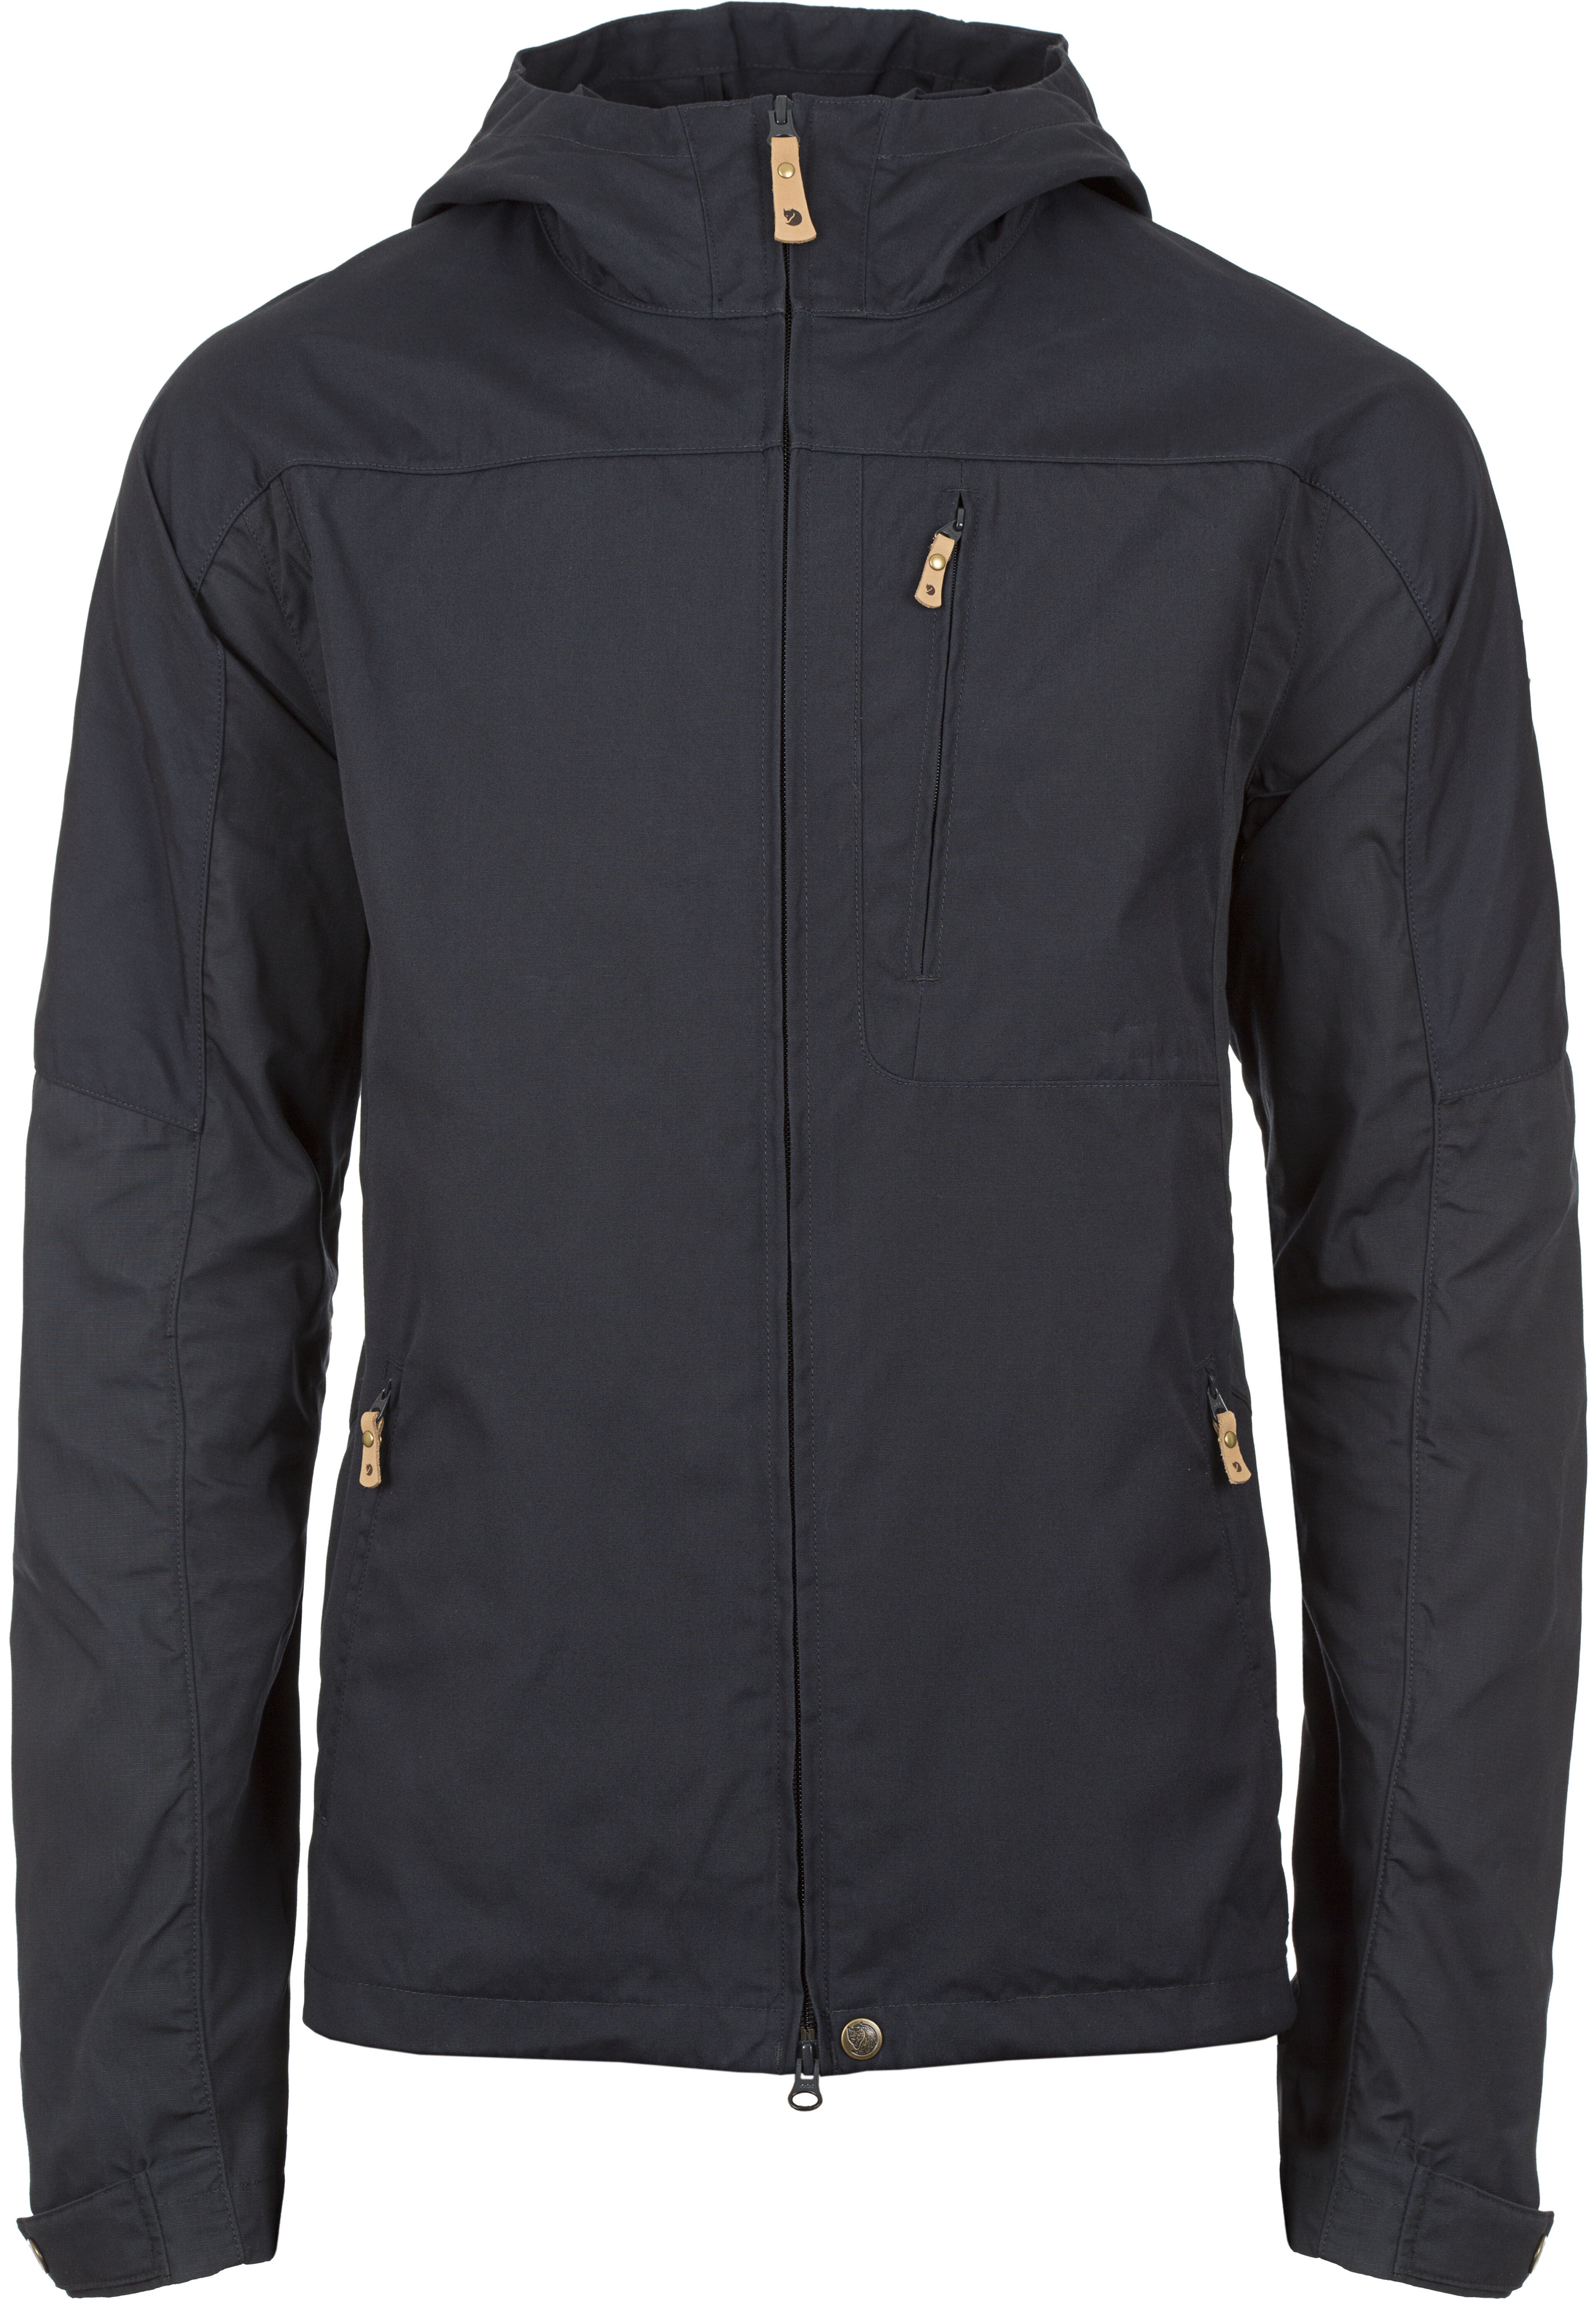 buy popular 39545 81971 Fjällräven Sten Jacket Herren dark navy